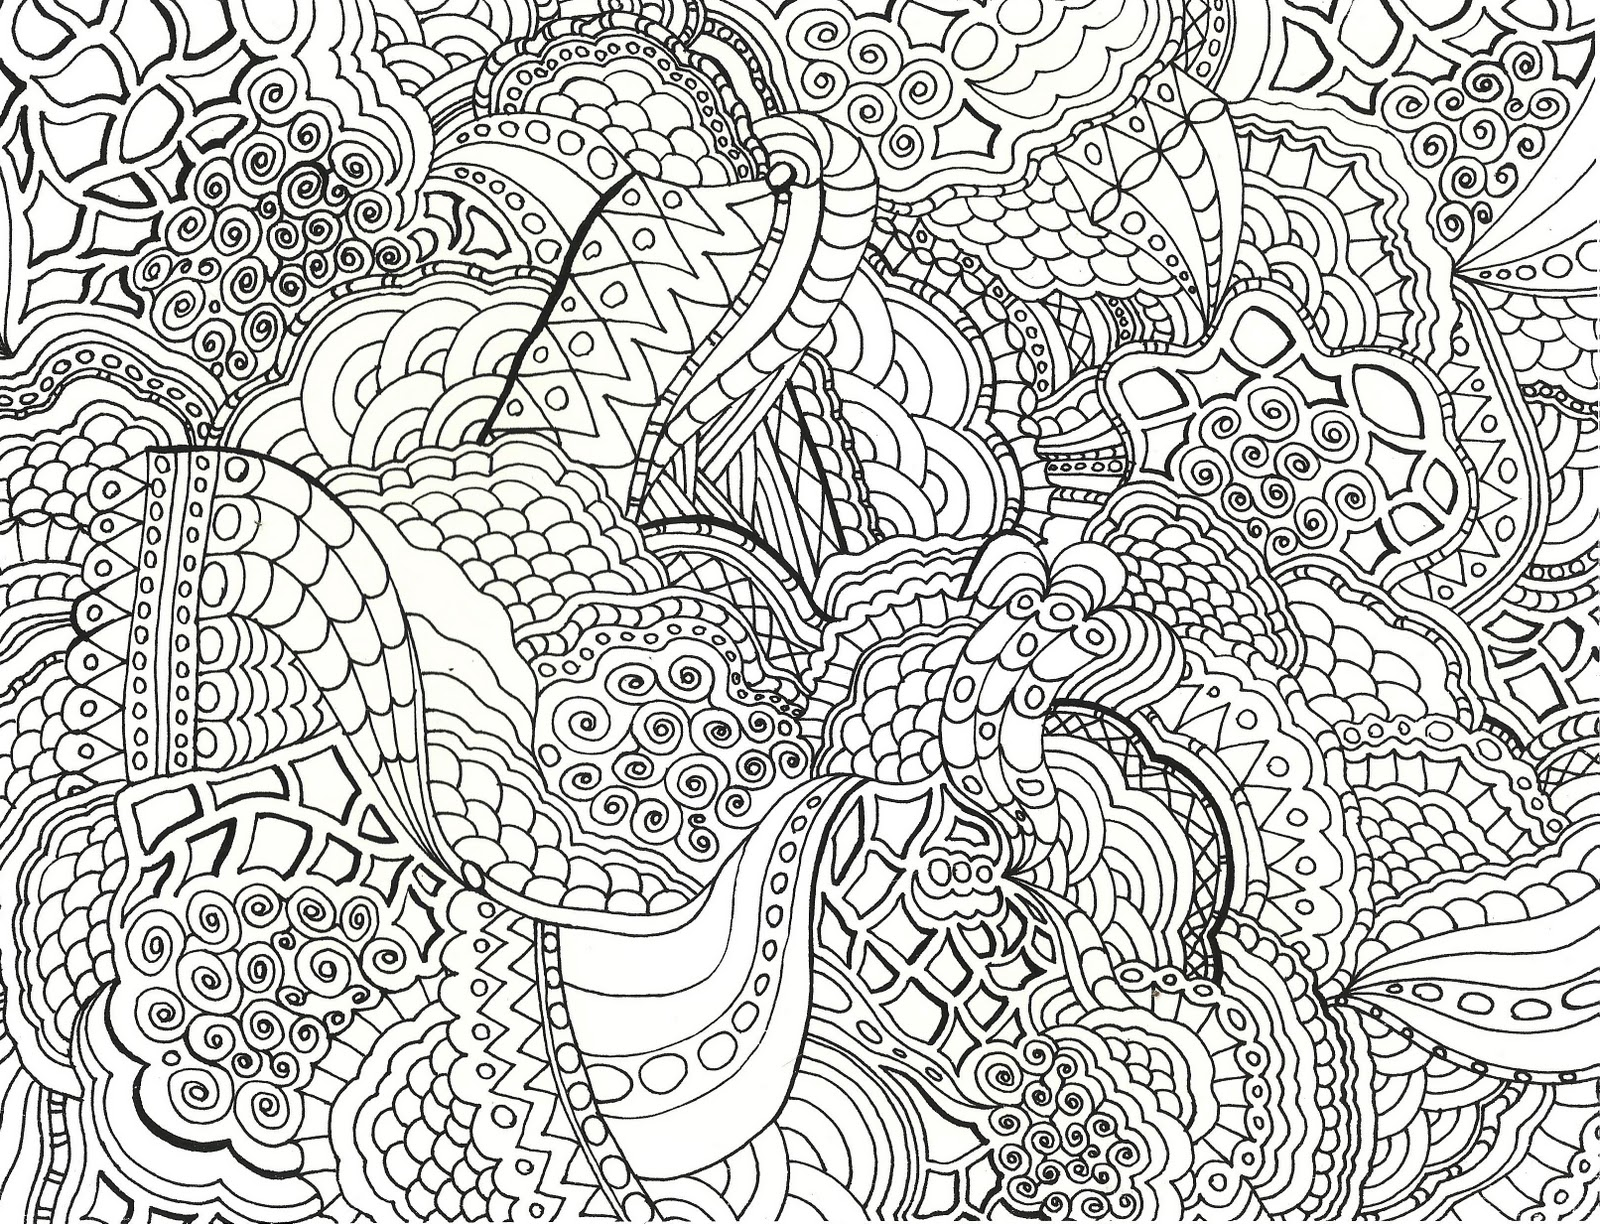 Printable Colouring Pages For Grown Ups : Grown up coloring pages to download and print for free